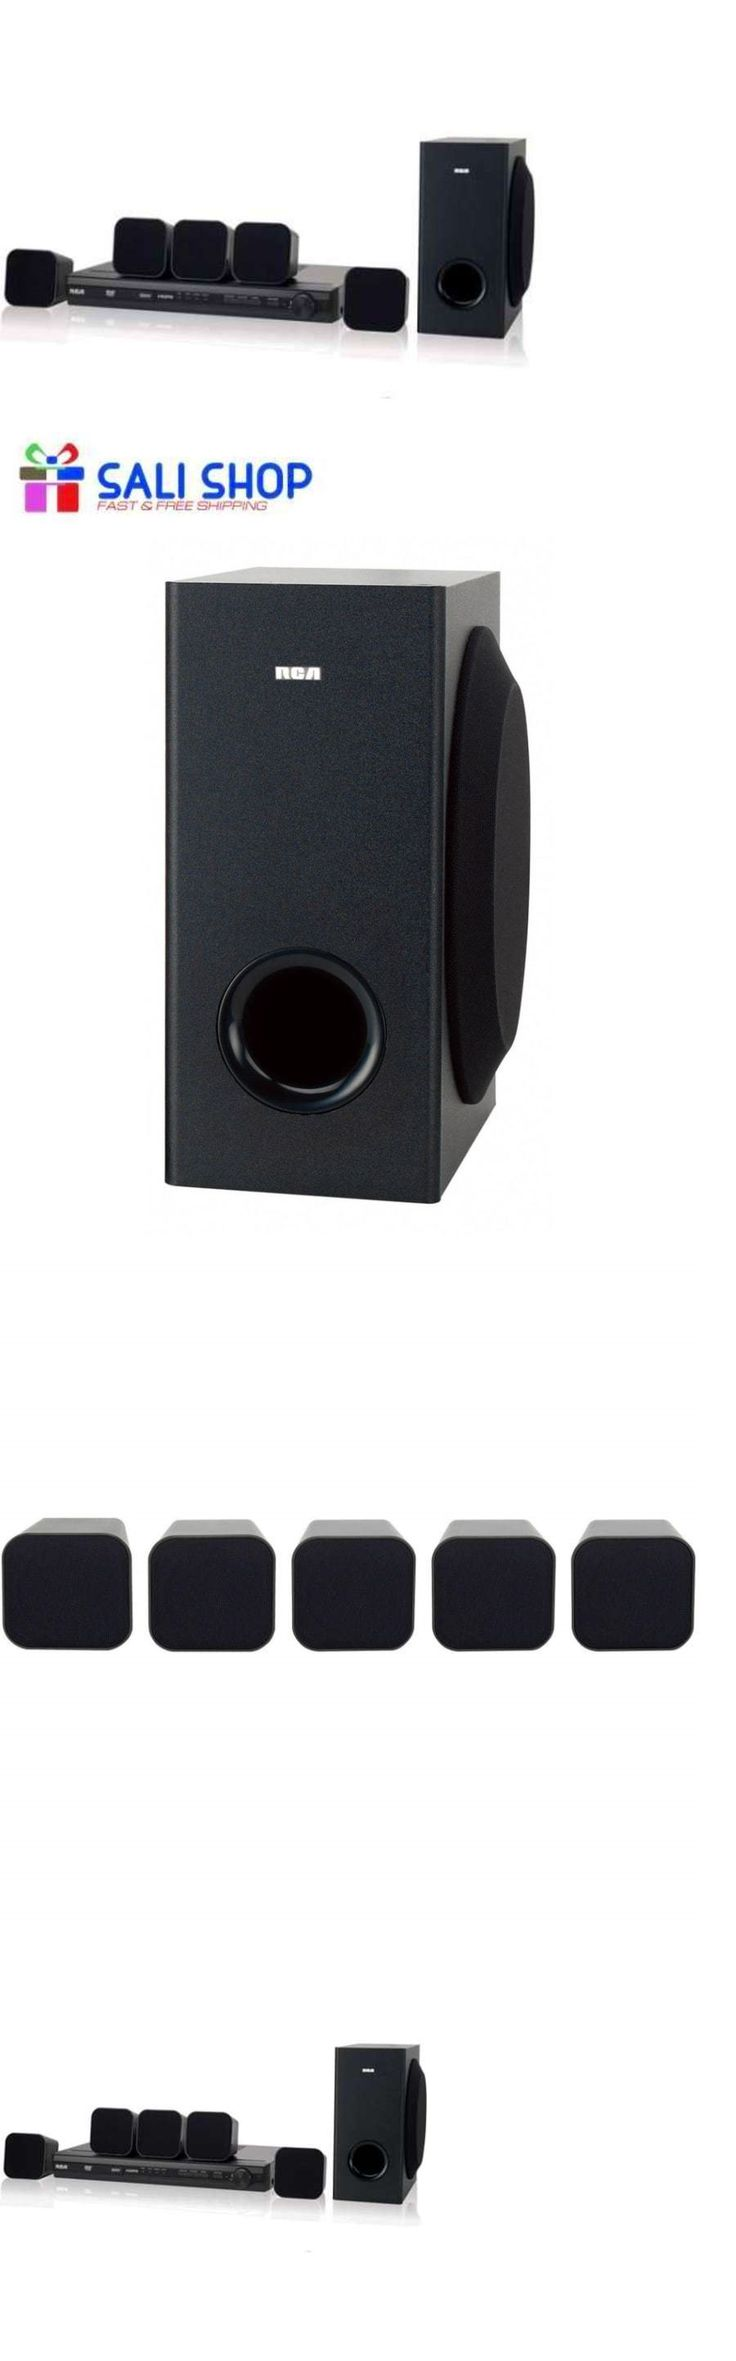 Home Theater Systems: 200W Surround Sound Home Theater System 5 Speakers + Subwoofer With Dvd Player -> BUY IT NOW ONLY: $104.95 on eBay!